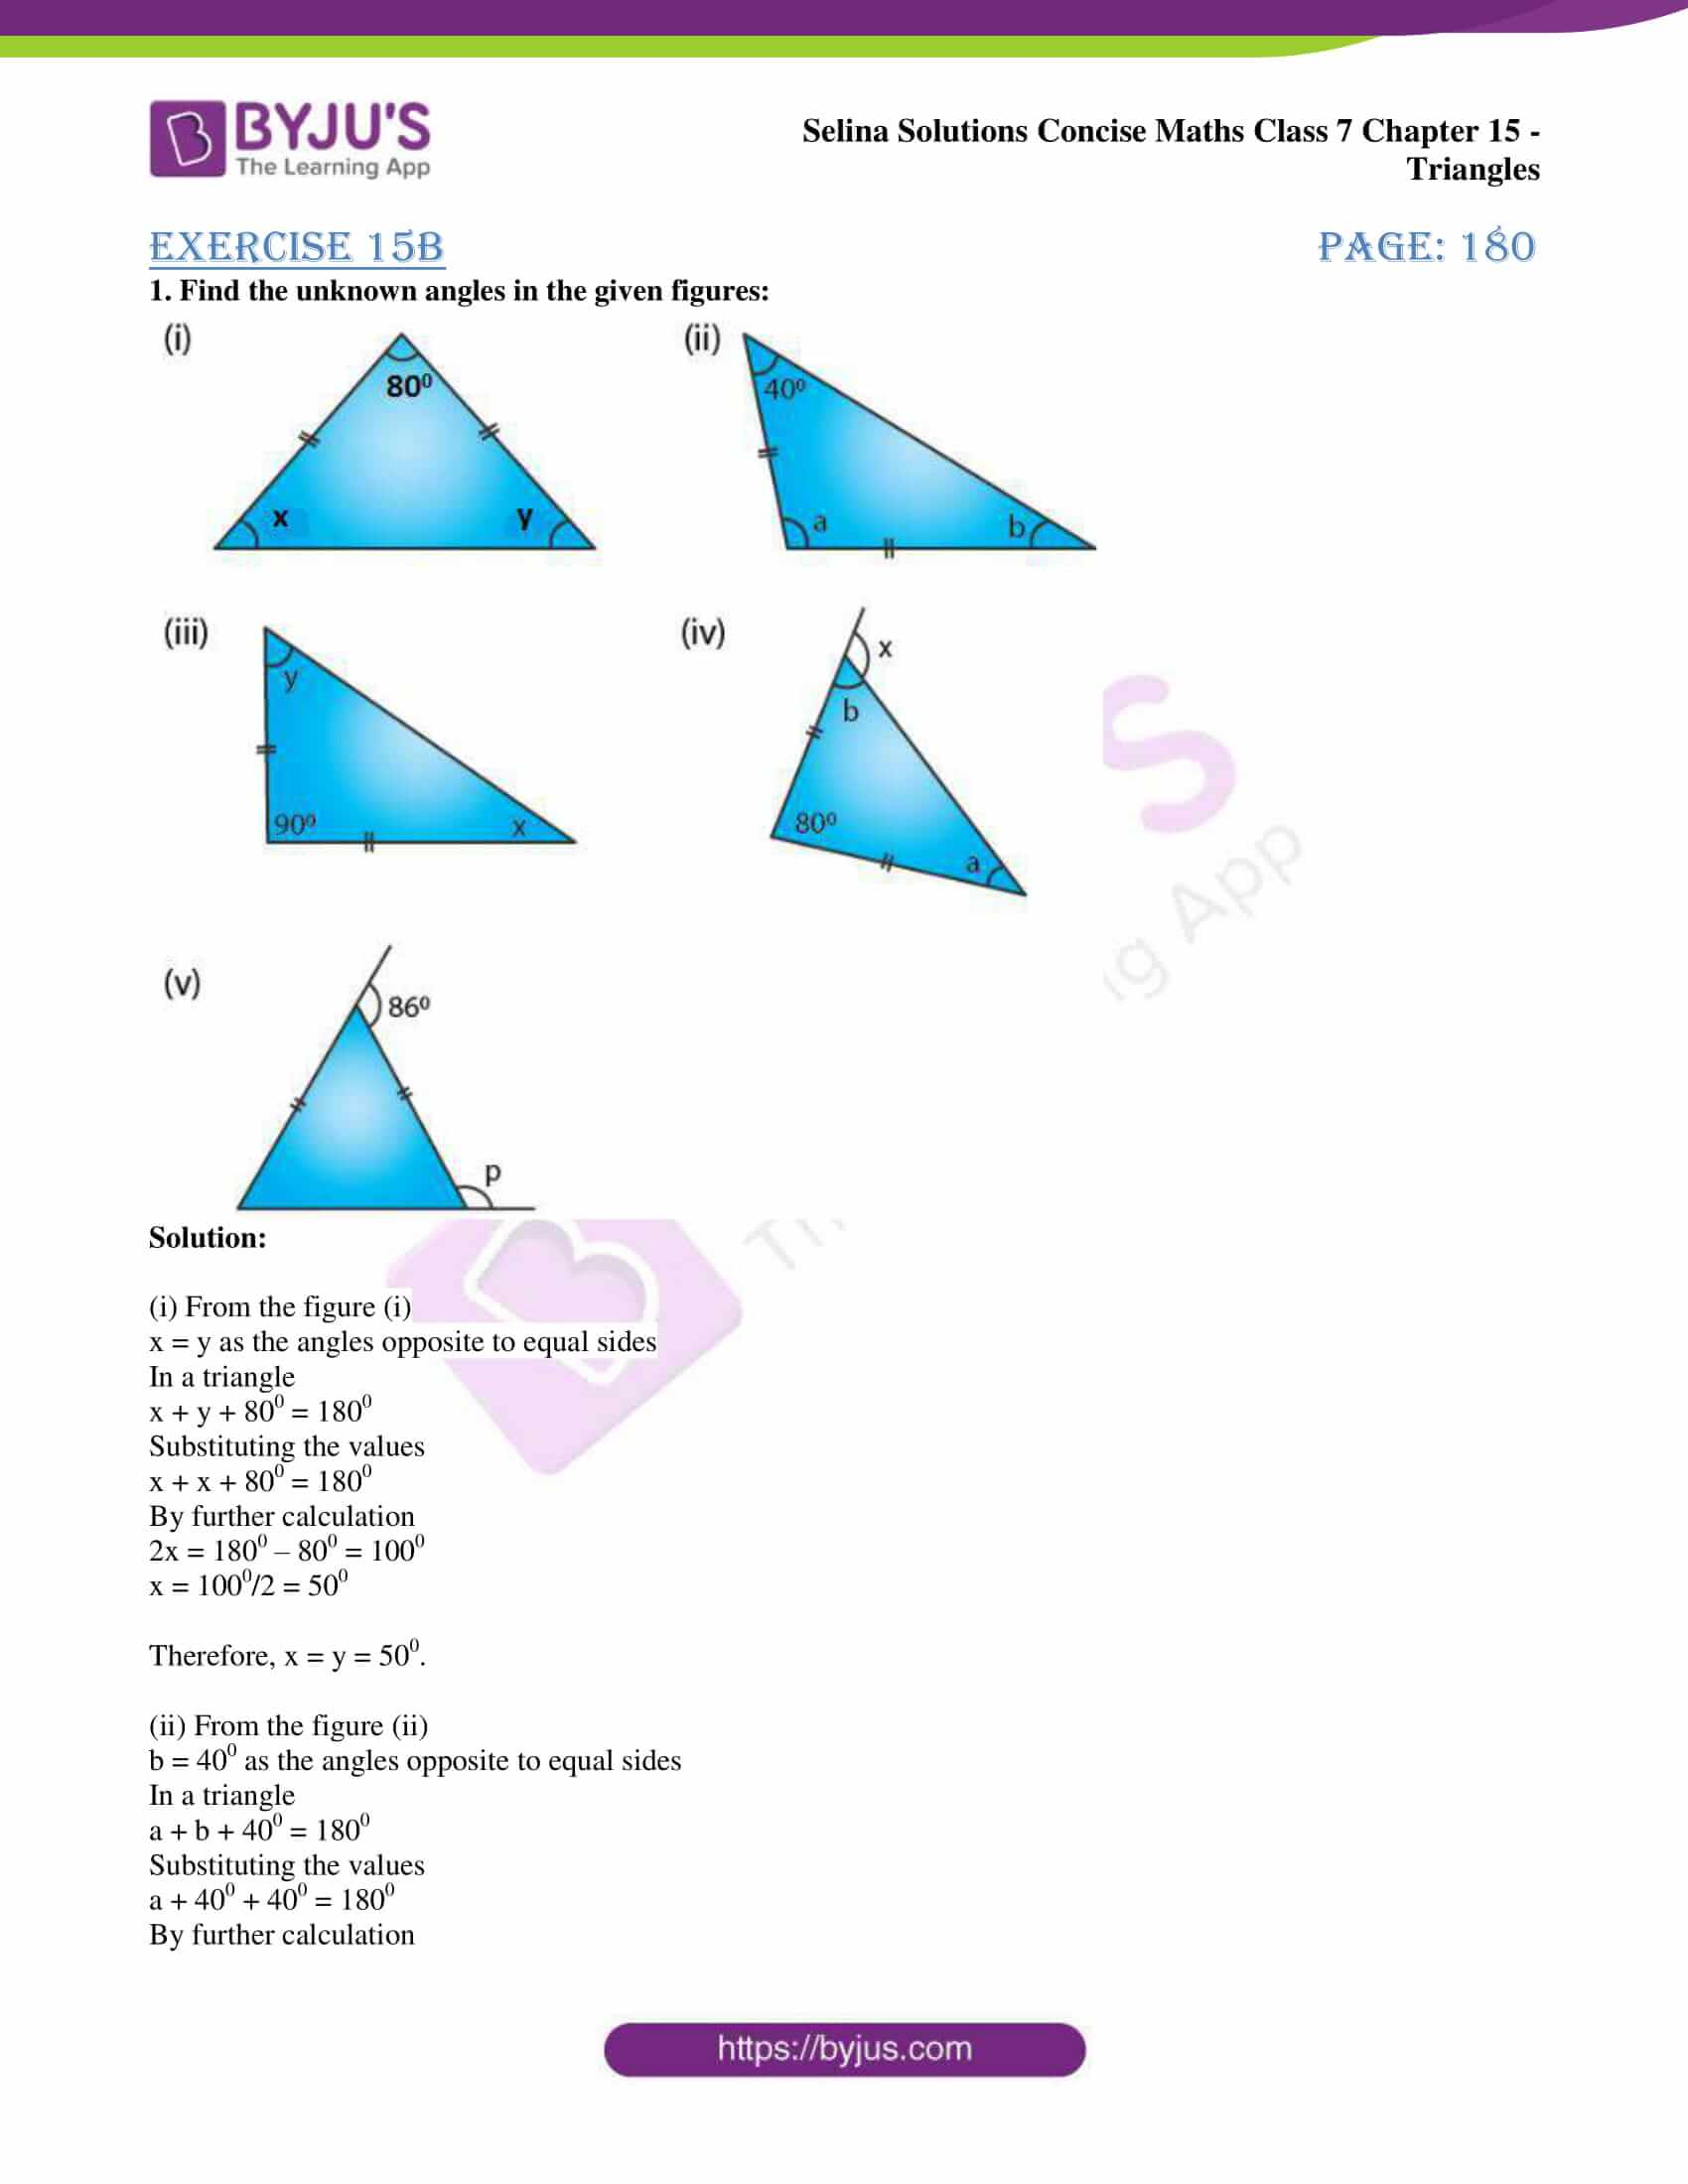 selina sol concise maths class 7 chapter 15 ex b 01